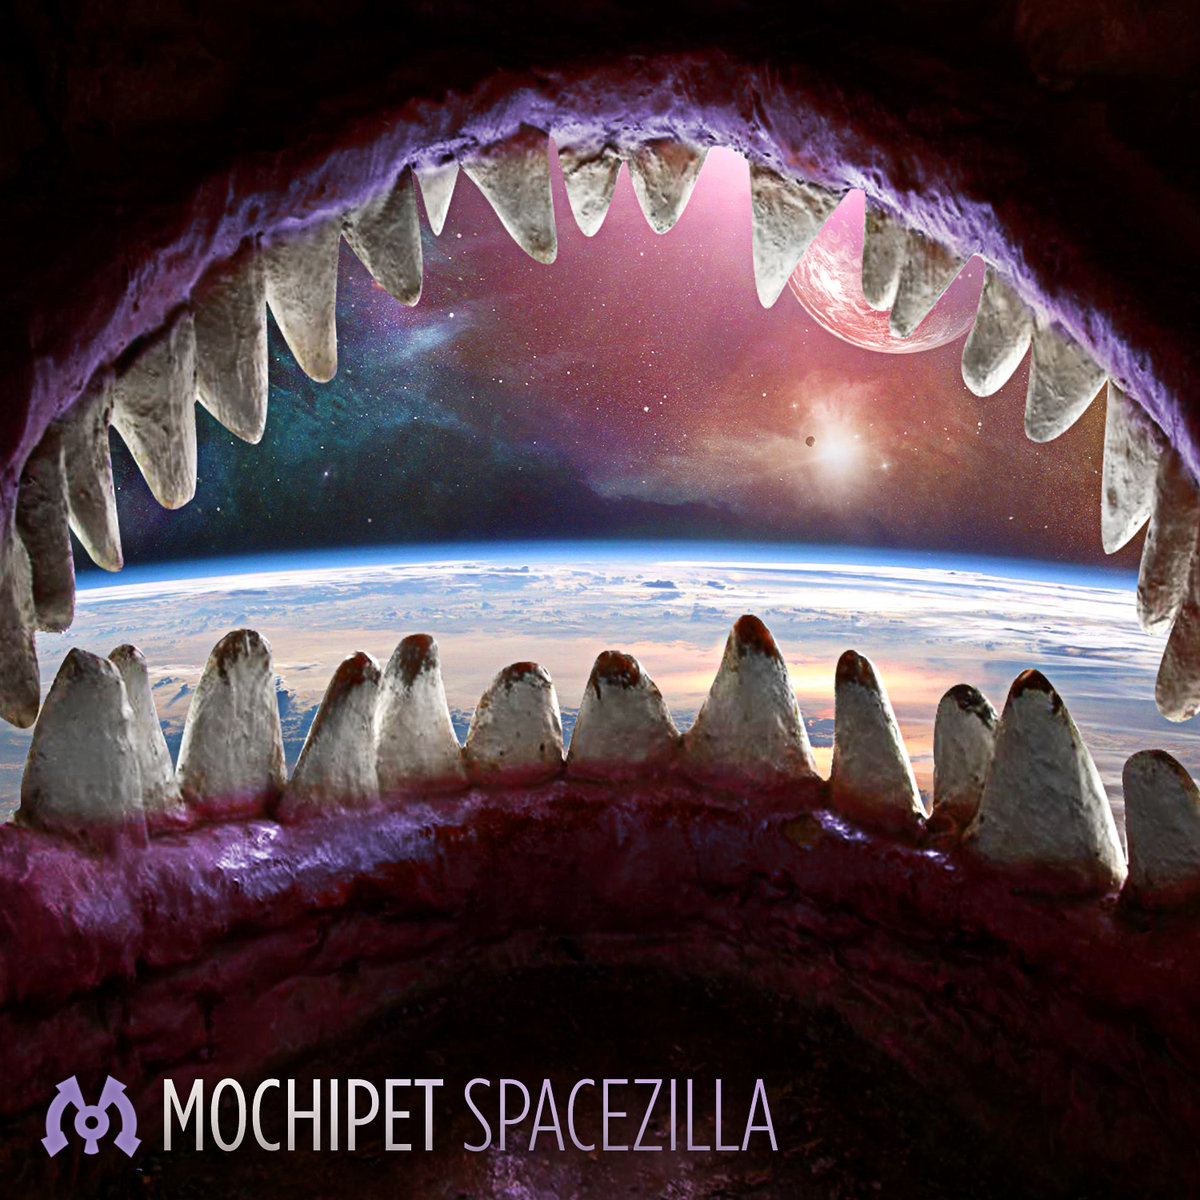 Mochipet - Spacezilla (Konekta Remix) @ 'Spacezilla' album (electronic, dubstep)